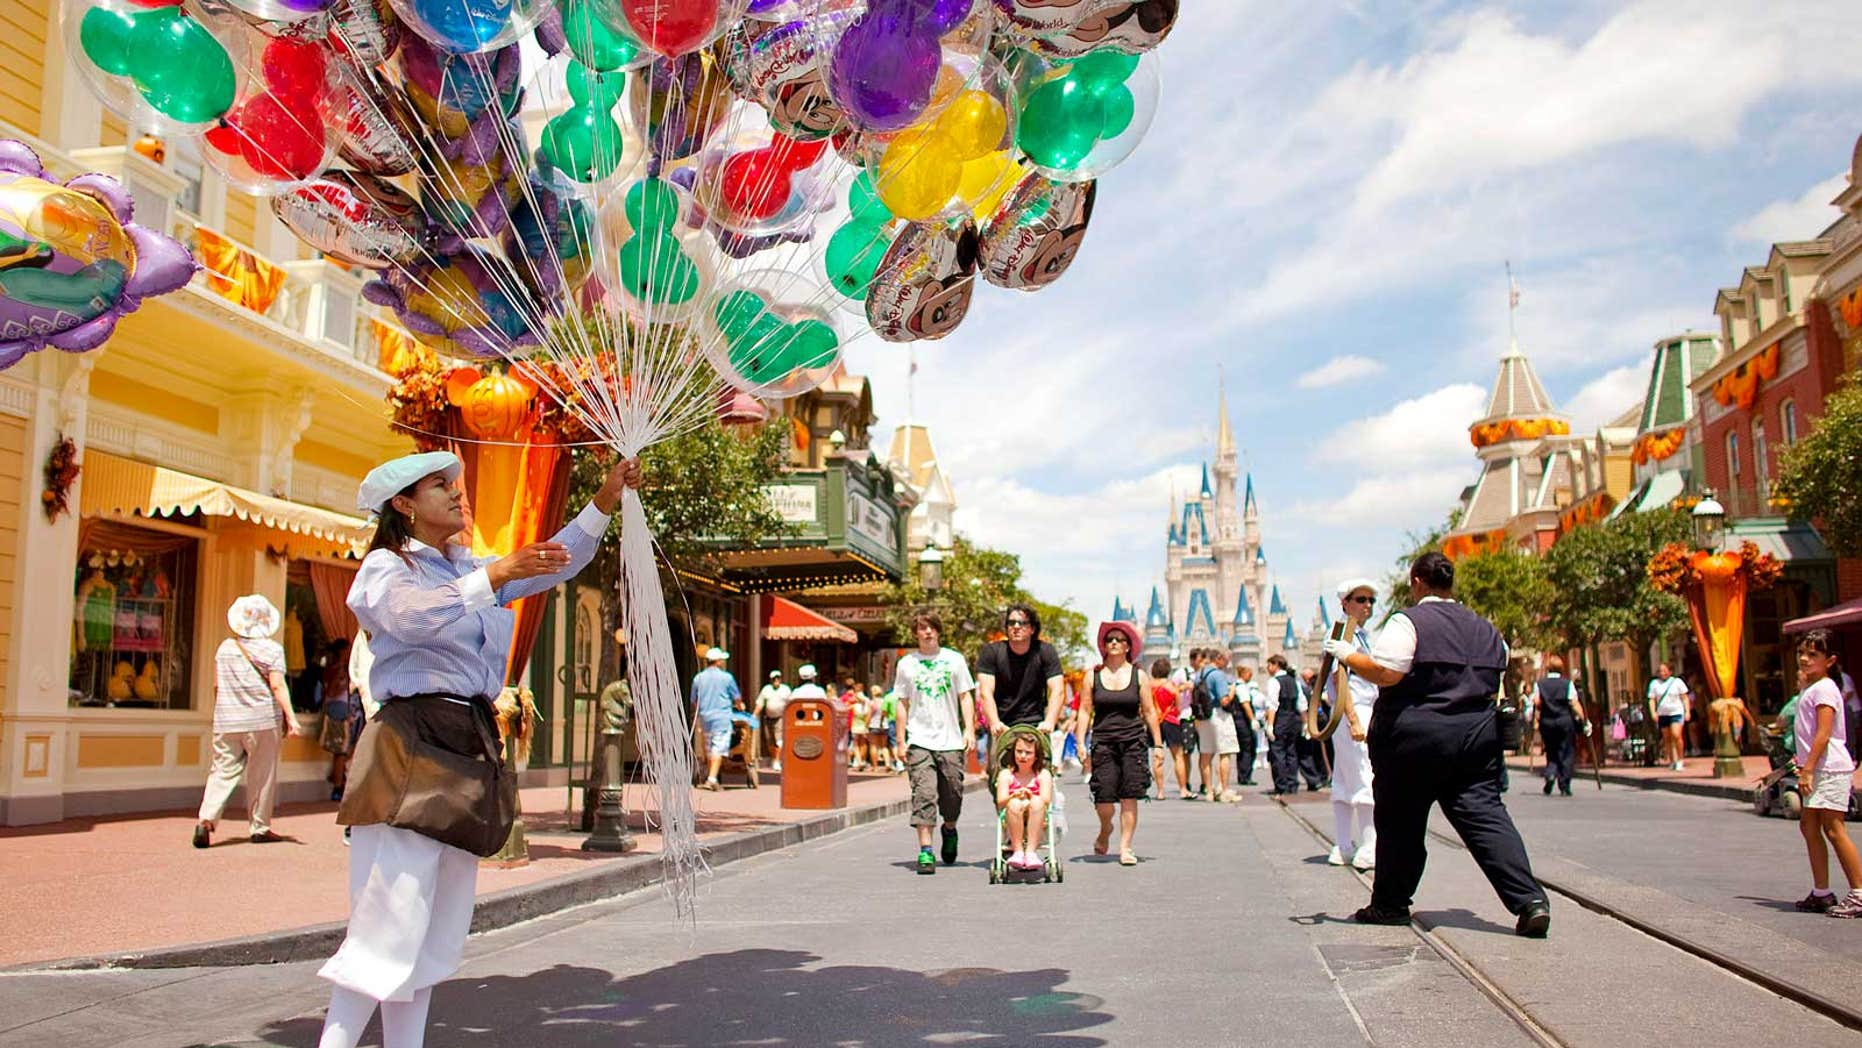 All Disney cast members follow this one rule to help keep the park clean.